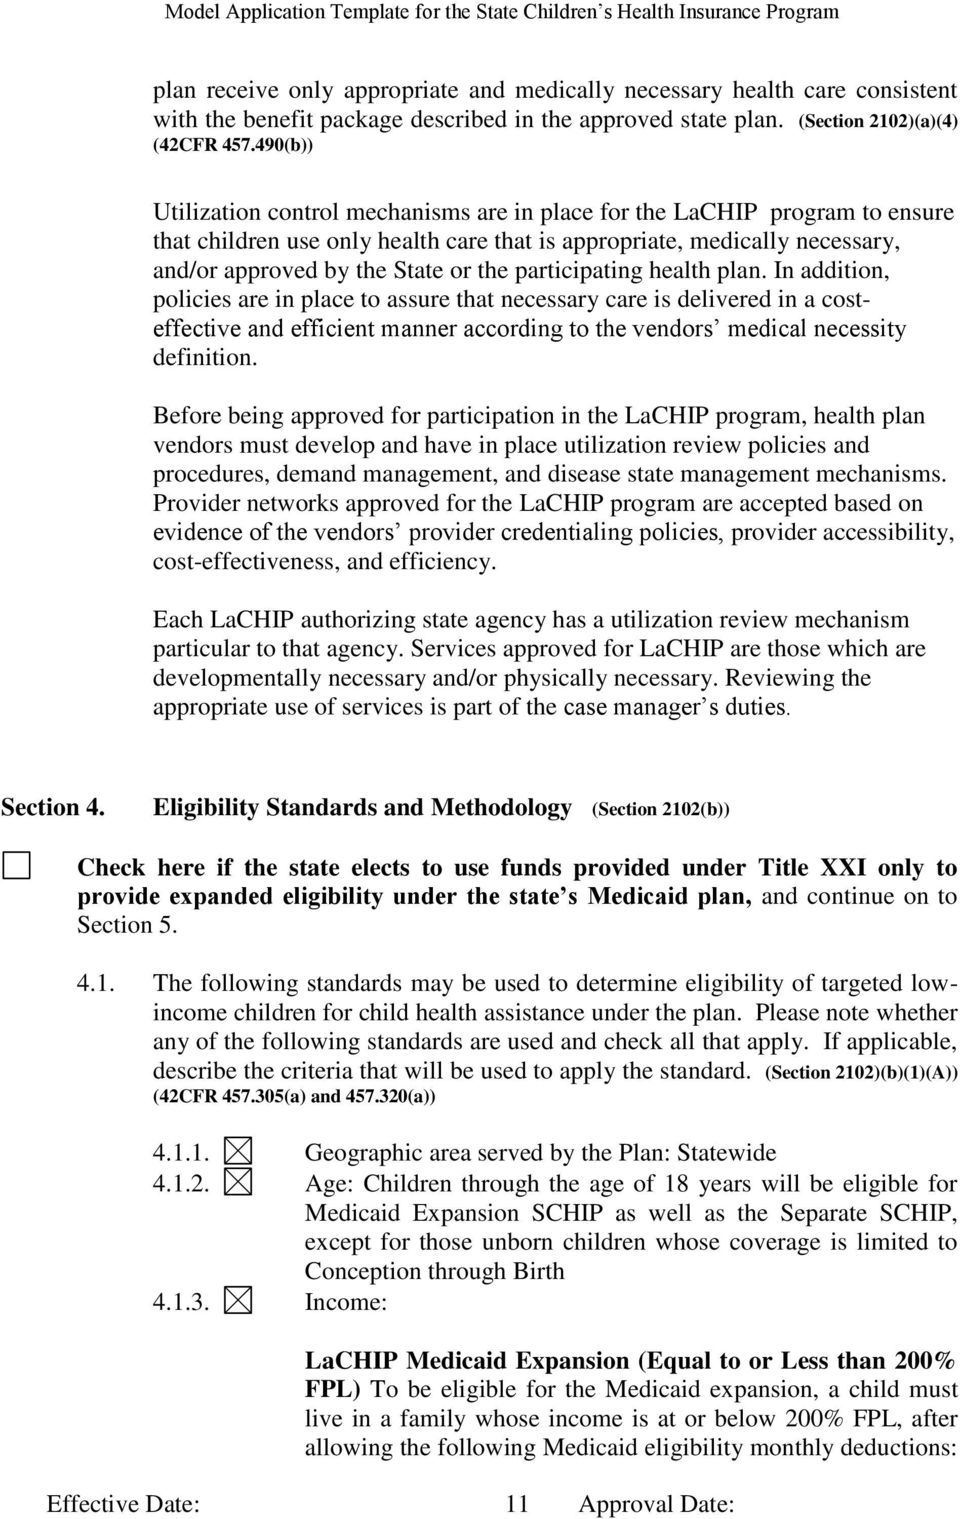 Model Application Template For State Child Health Plan Under Title Xxi Of  The Social Security Act